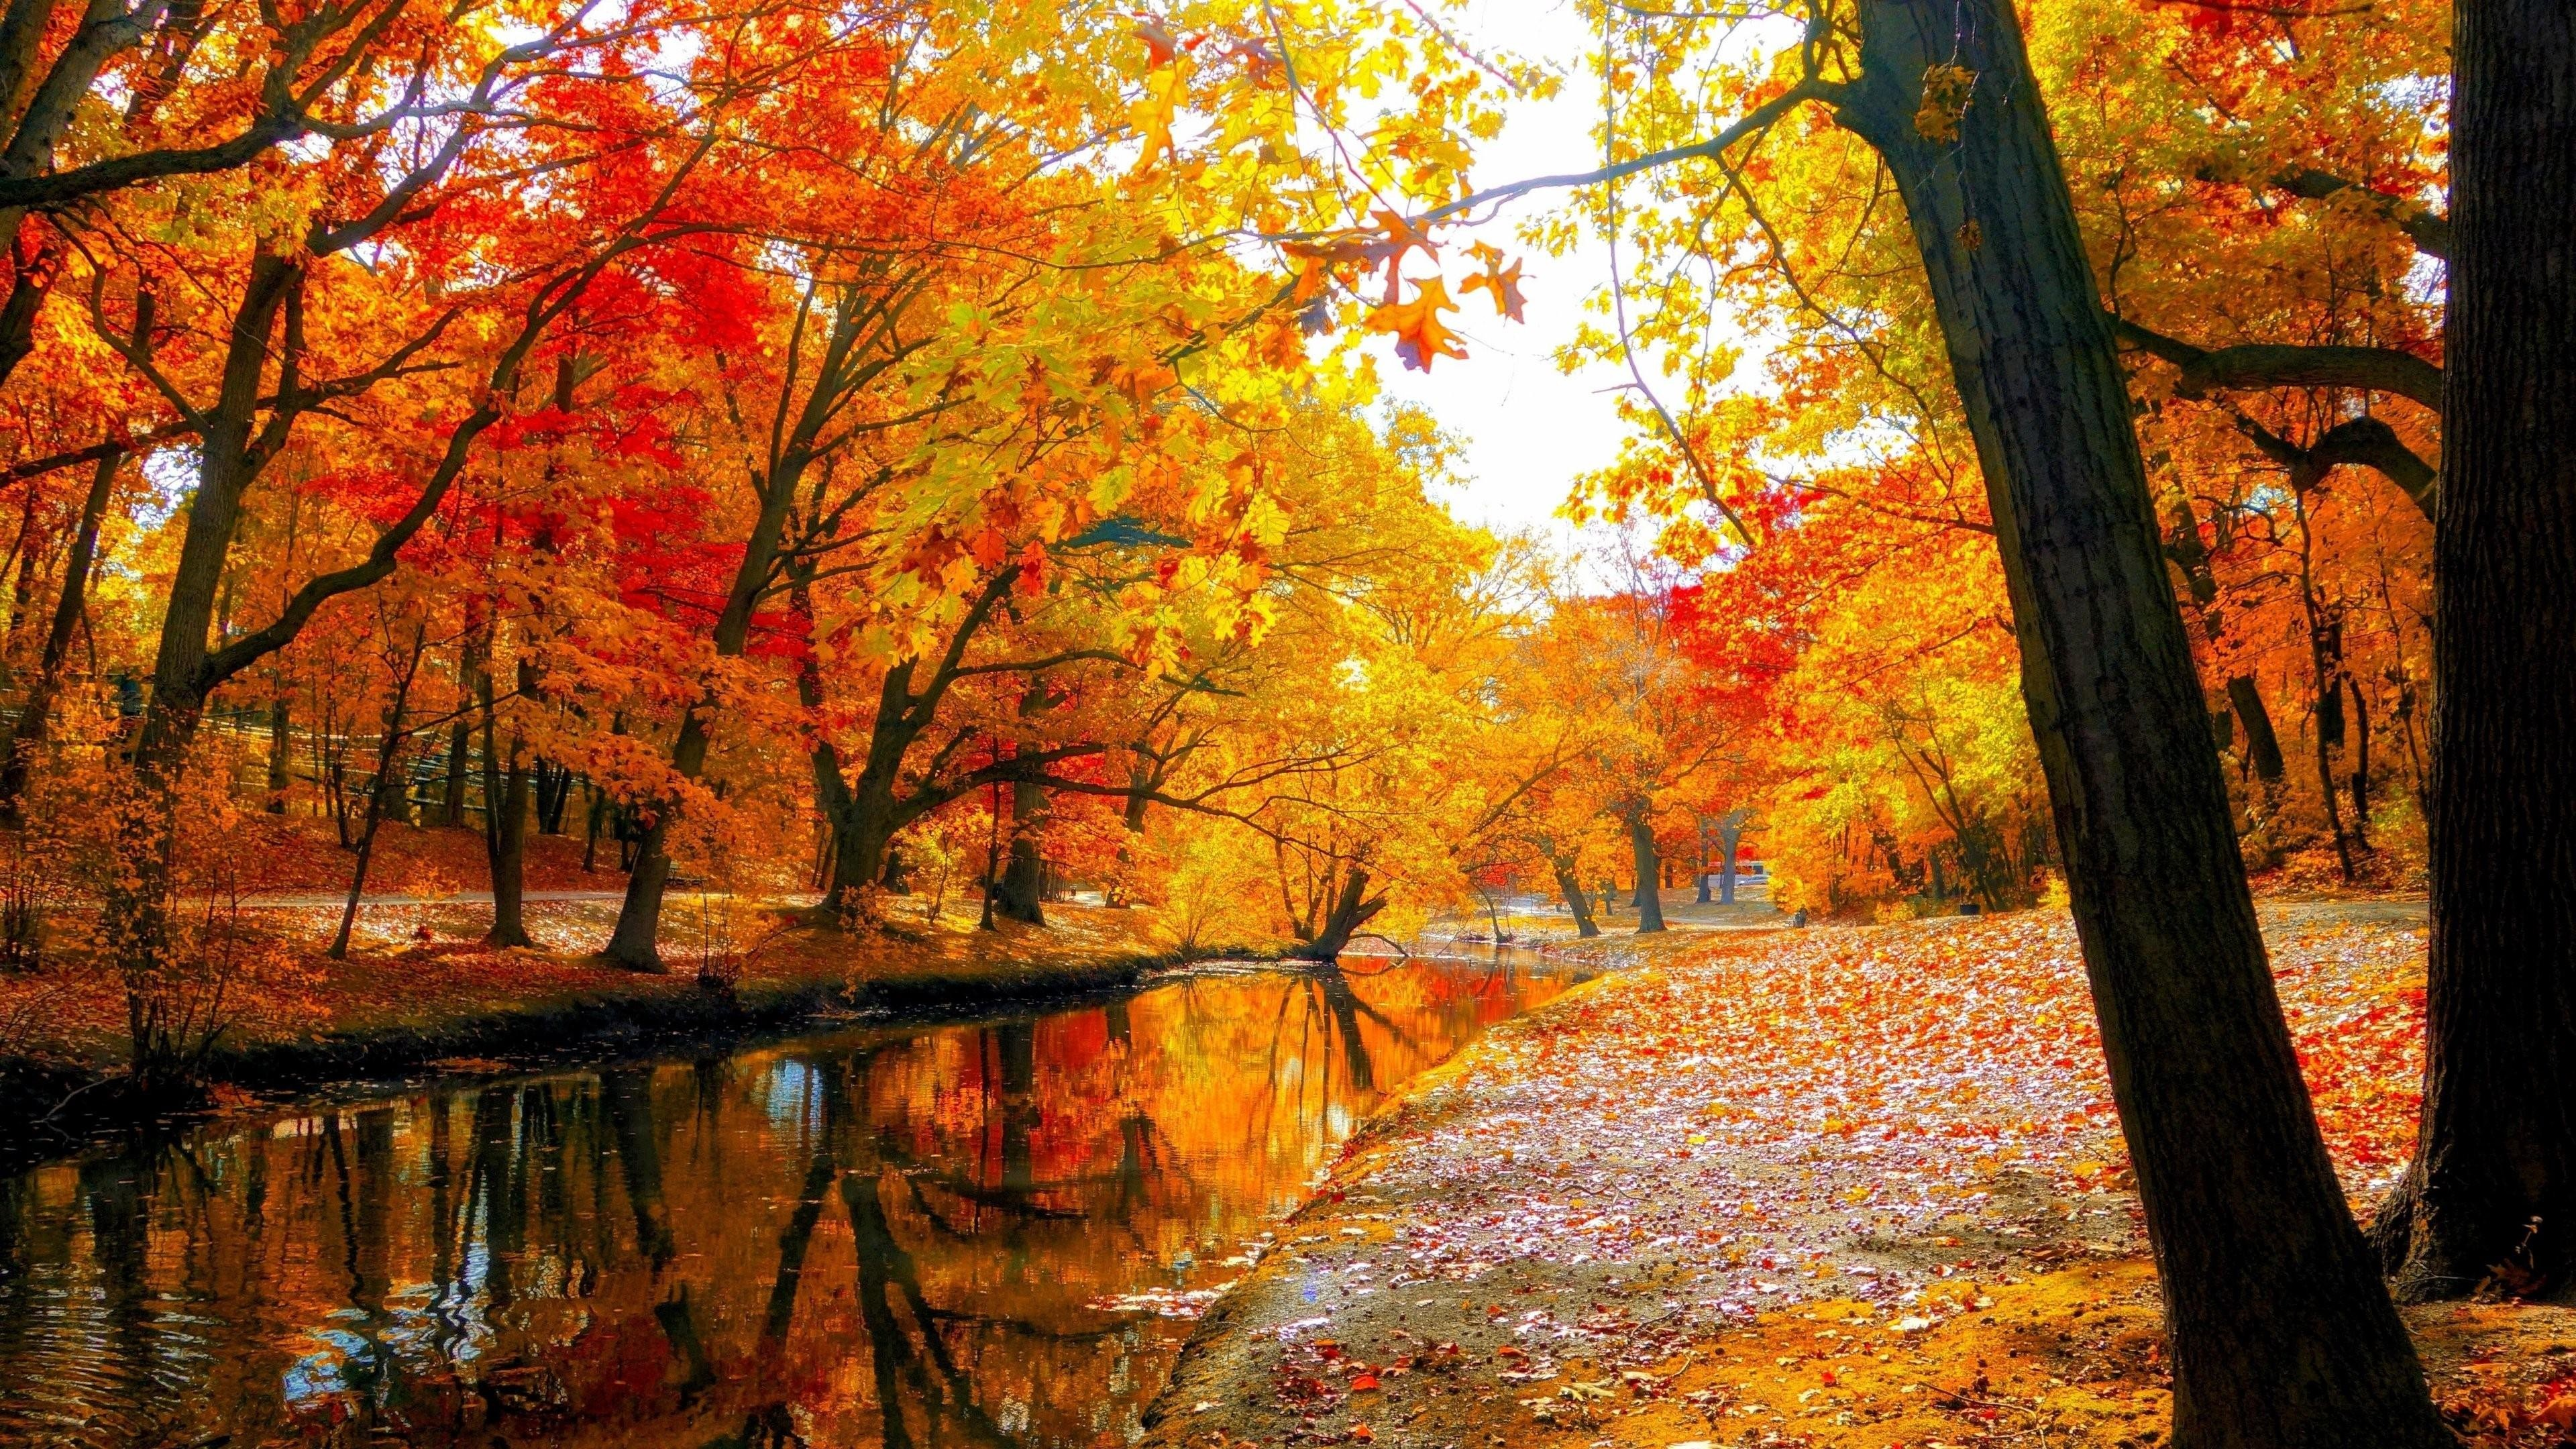 Autumn Trees Wallpaper (85+ images)